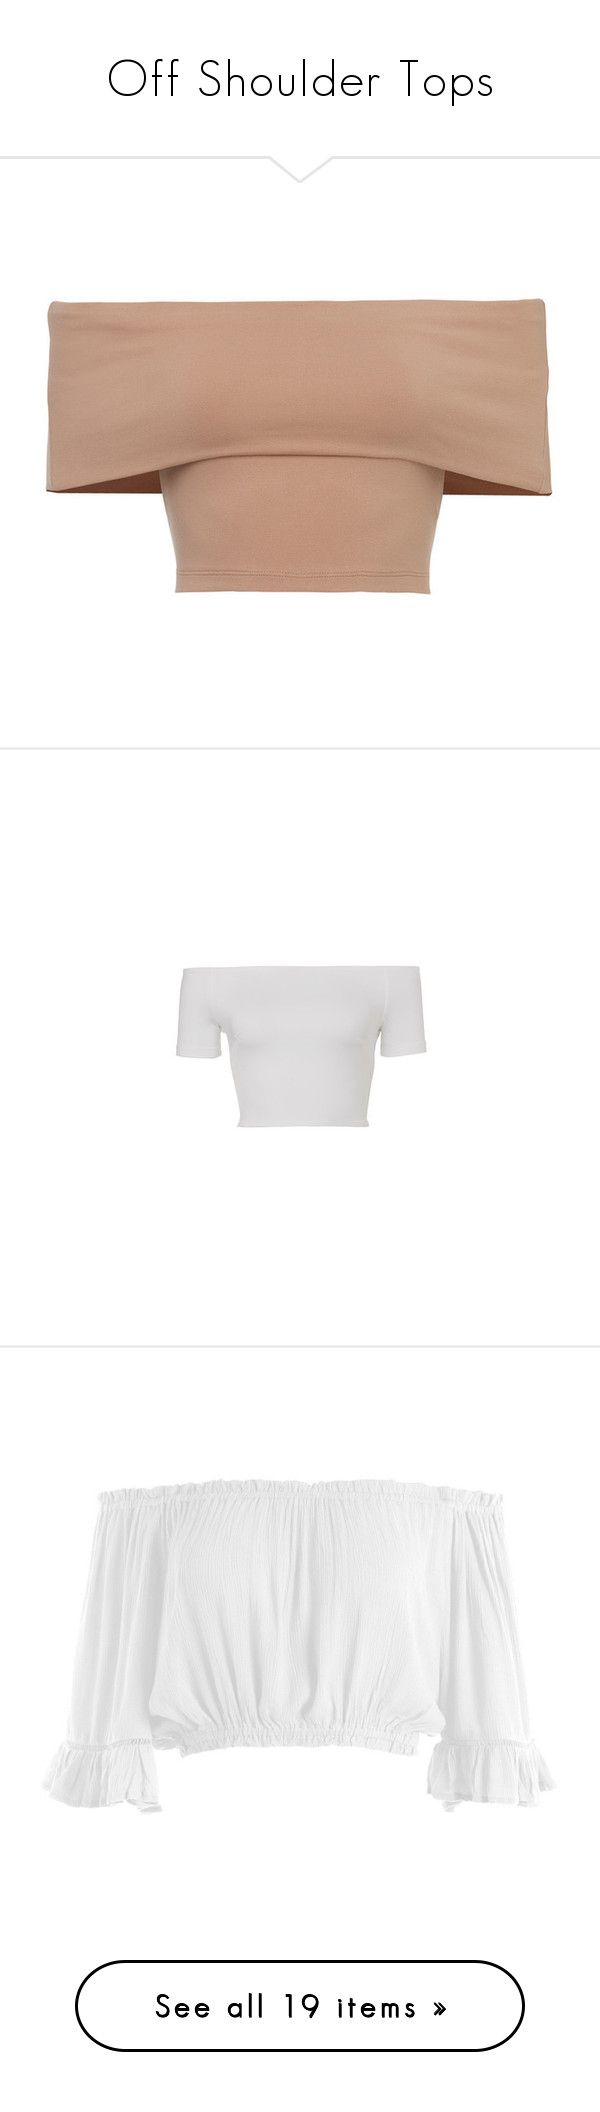 """""""Off Shoulder Tops"""" by laylah-wish ❤ liked on Polyvore featuring tops, shirts, crop top, blusas, beige shirt, off shoulder tops, cut-out crop tops, off shoulder shirt, beige crop top and crop tops"""